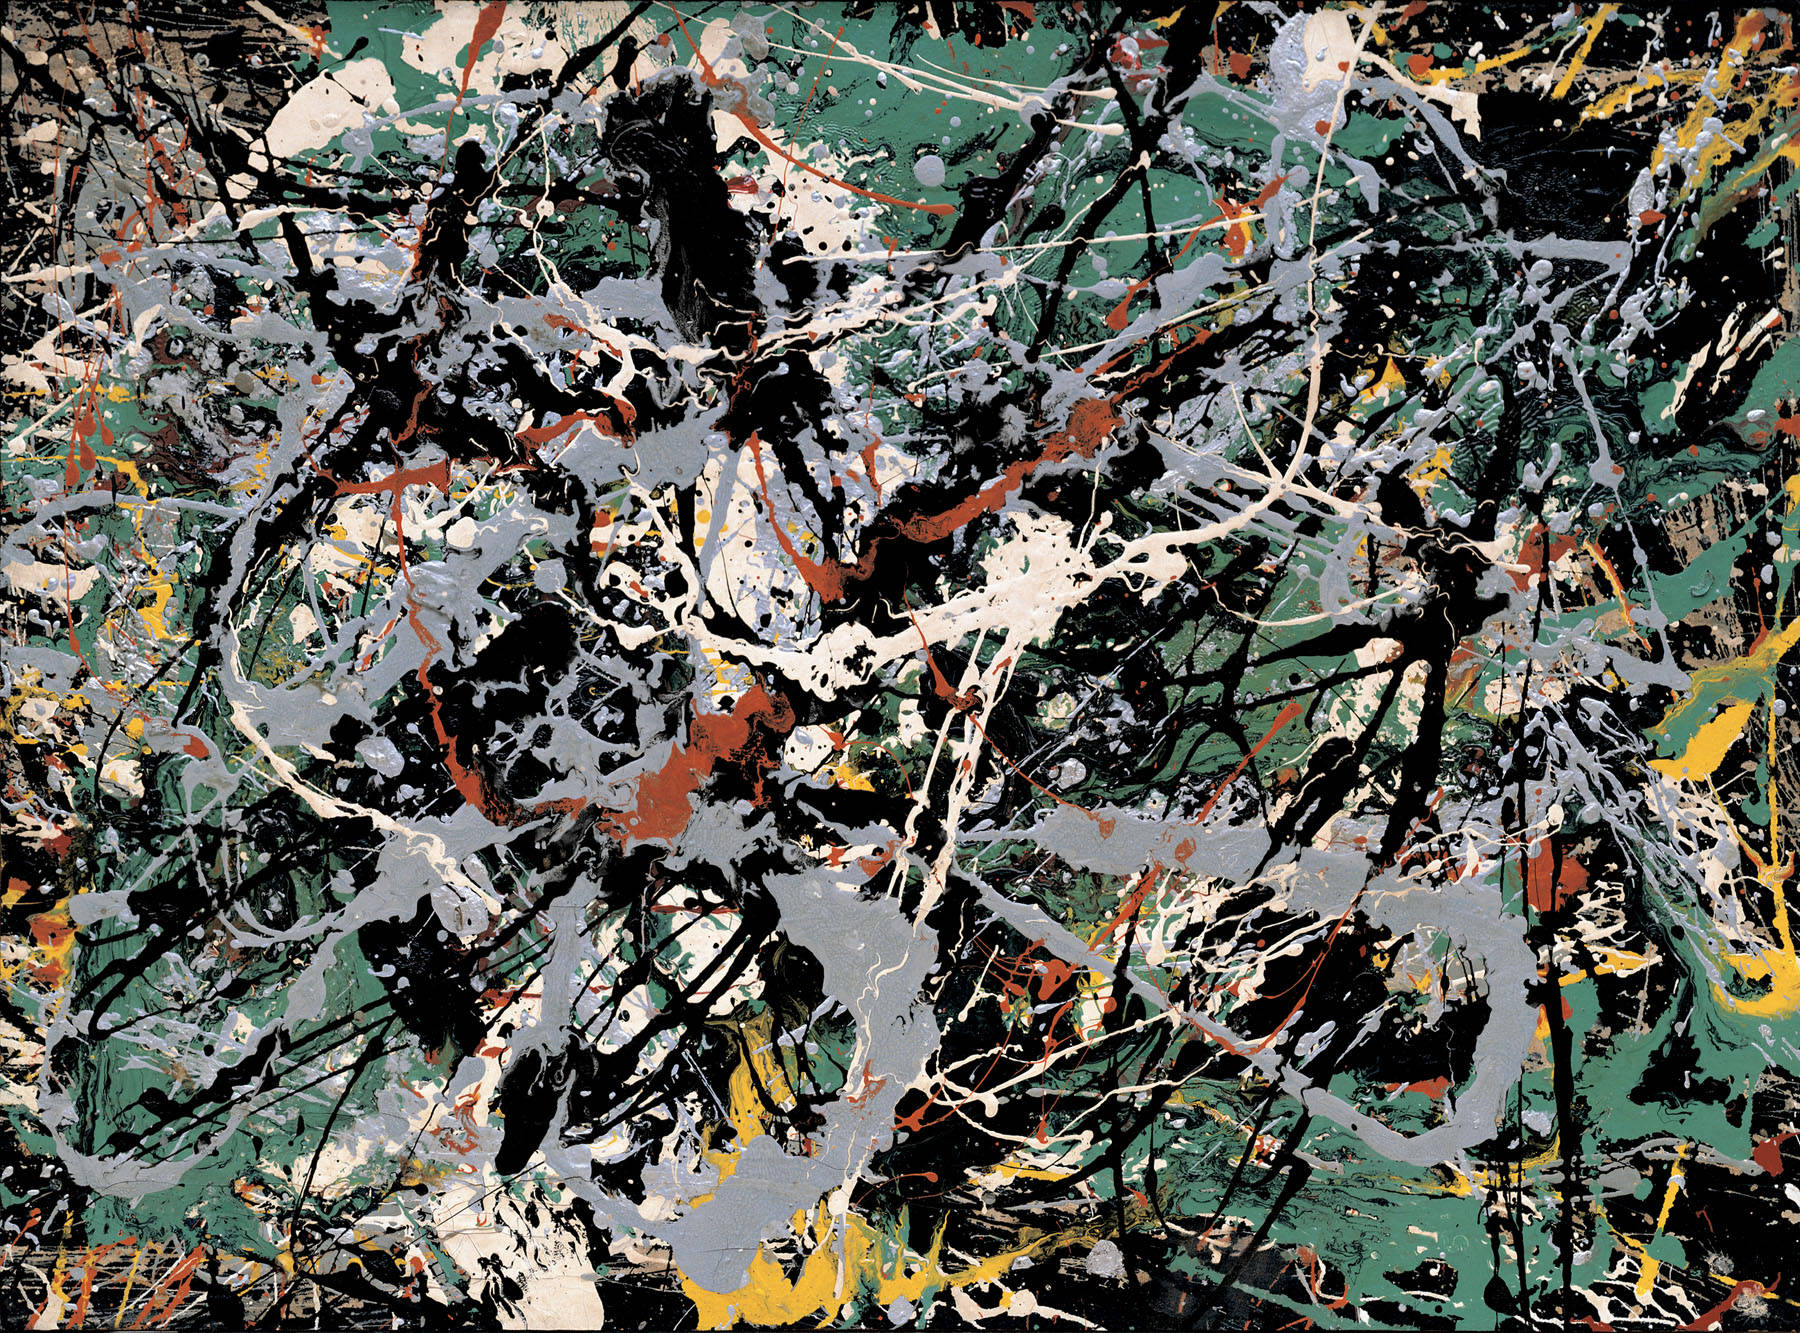 """an essay on jackson pollack and blue poles """"jackson pollack was an american artist who had an important influence on modern painting as an important figure in the abstract expressionist movement"""" (world book) jackson pollock was born  discuss in relation to jackson pollock's blue poles essay around the 1930's."""